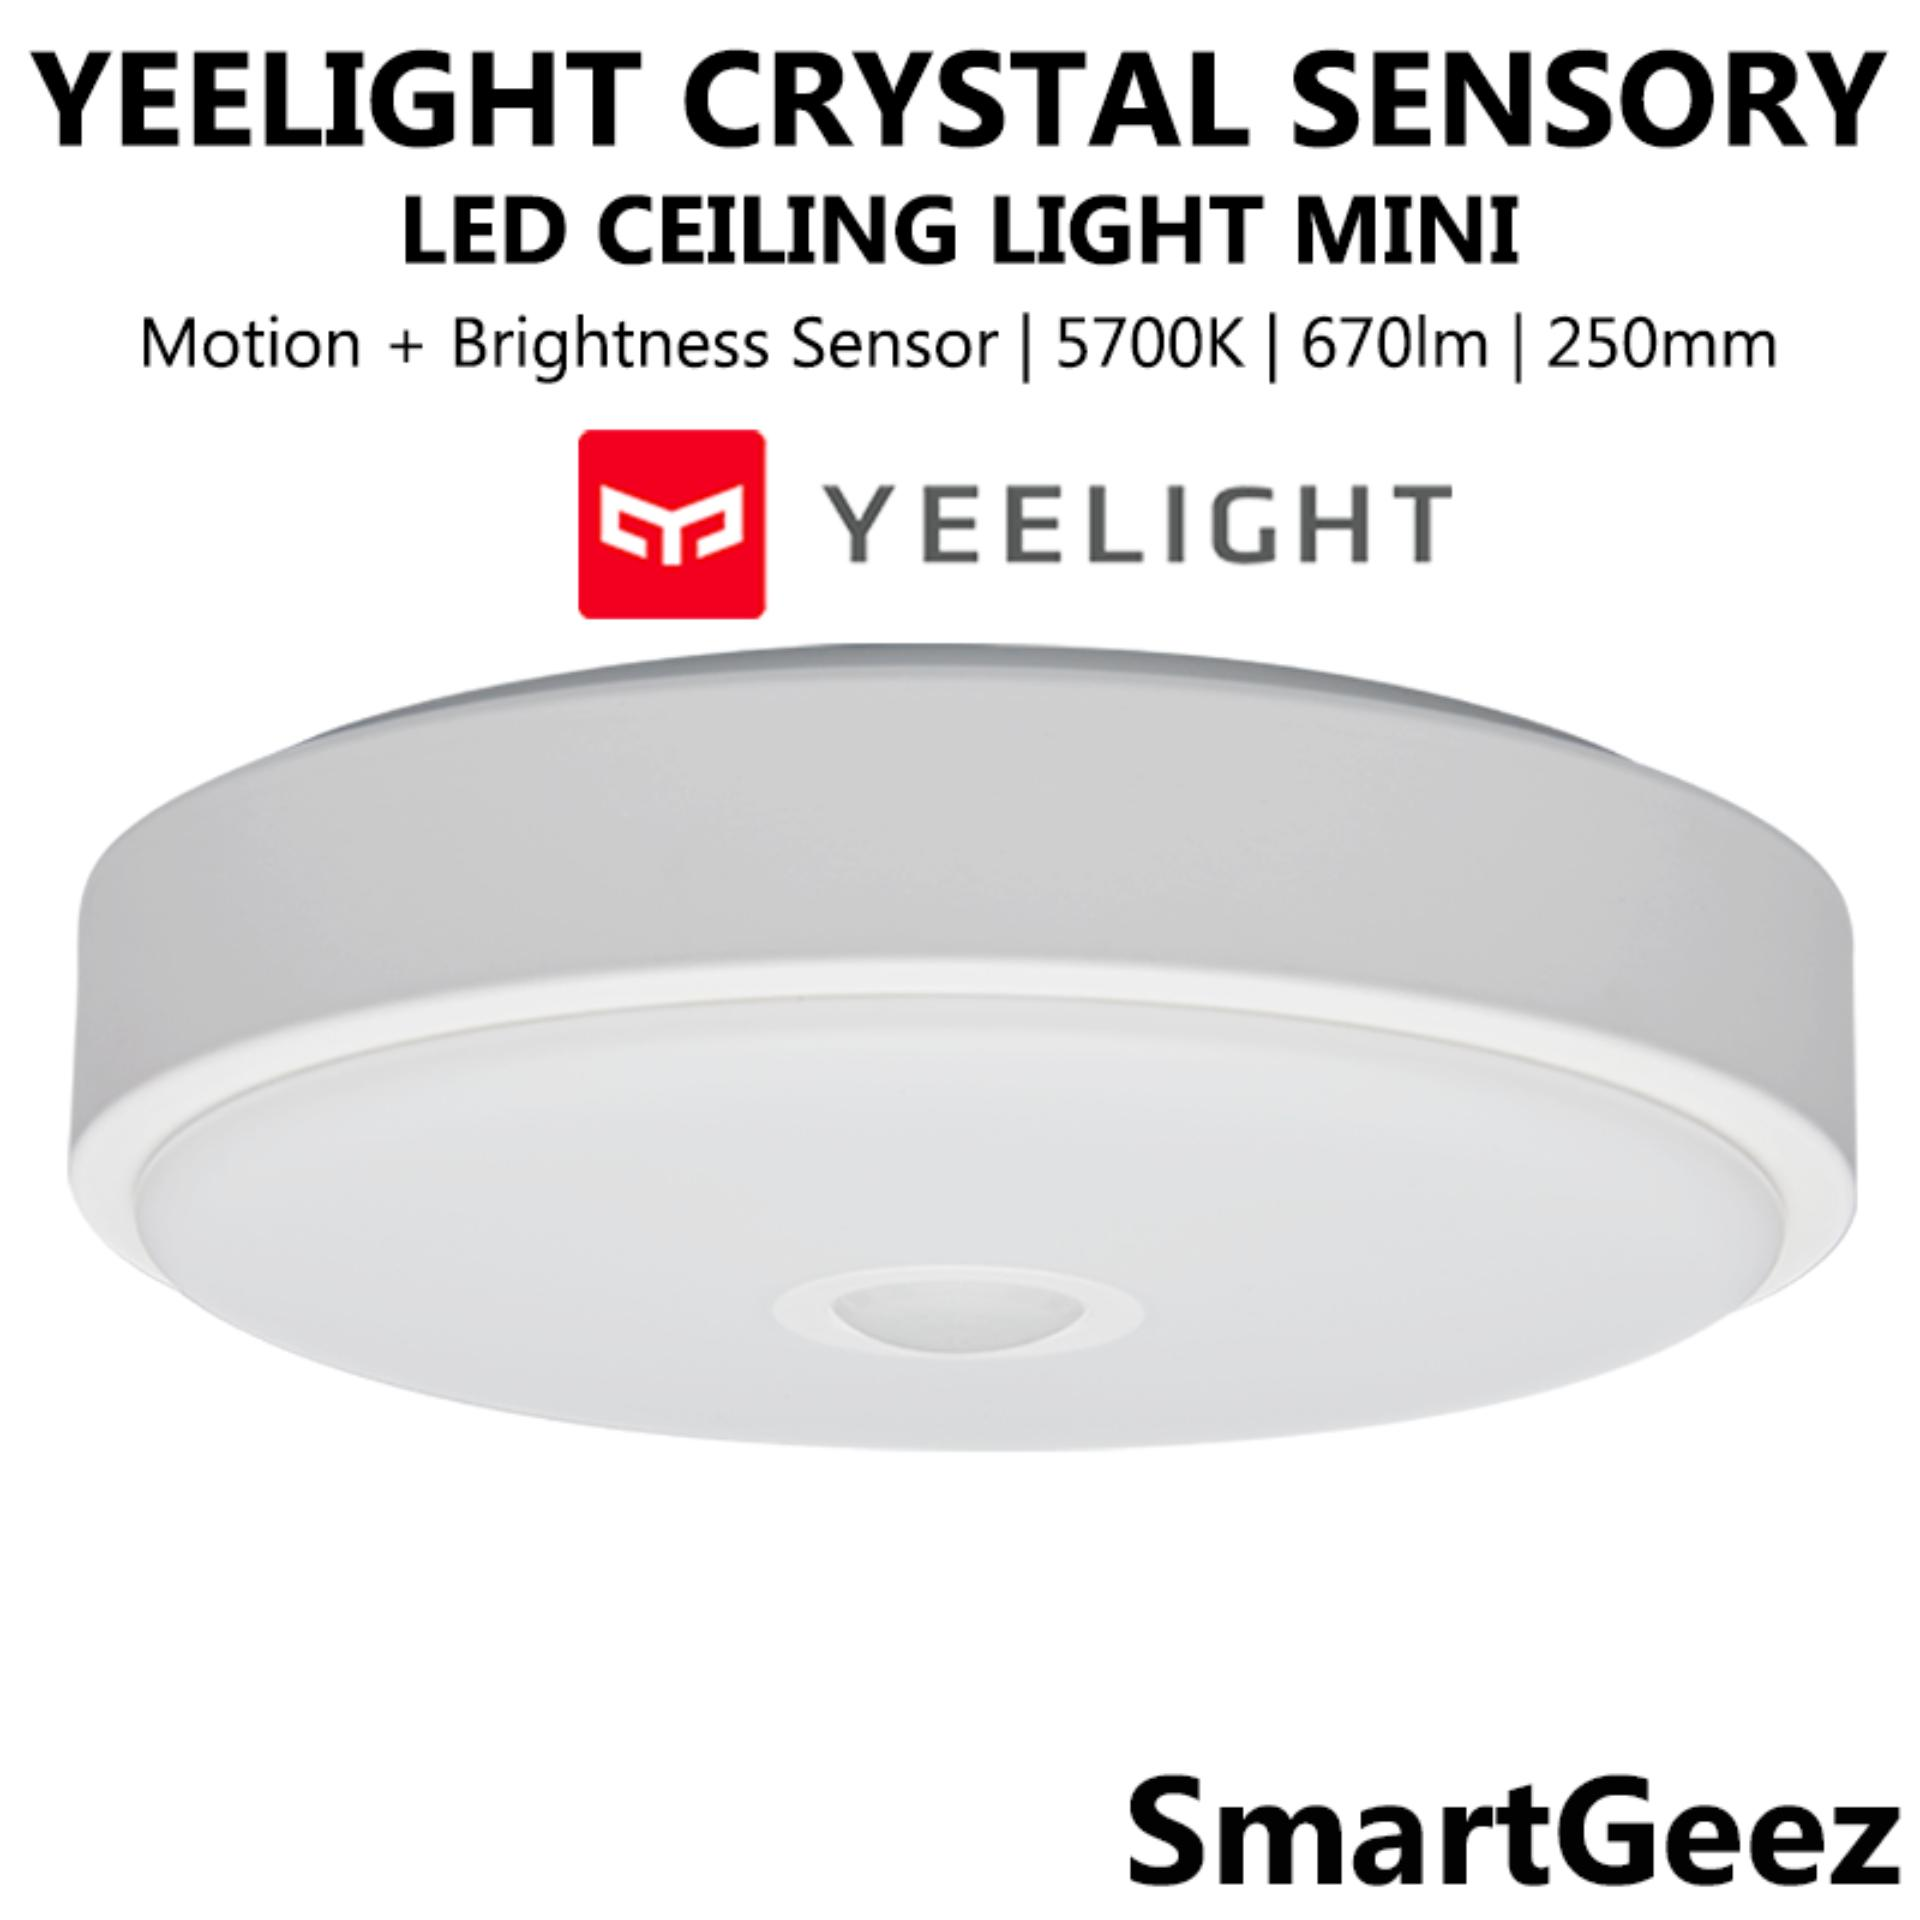 Yeelight Crystal Sensory Mini Ceiling Light 10W 670 Lumens - YLXD09YL - SmartGeez